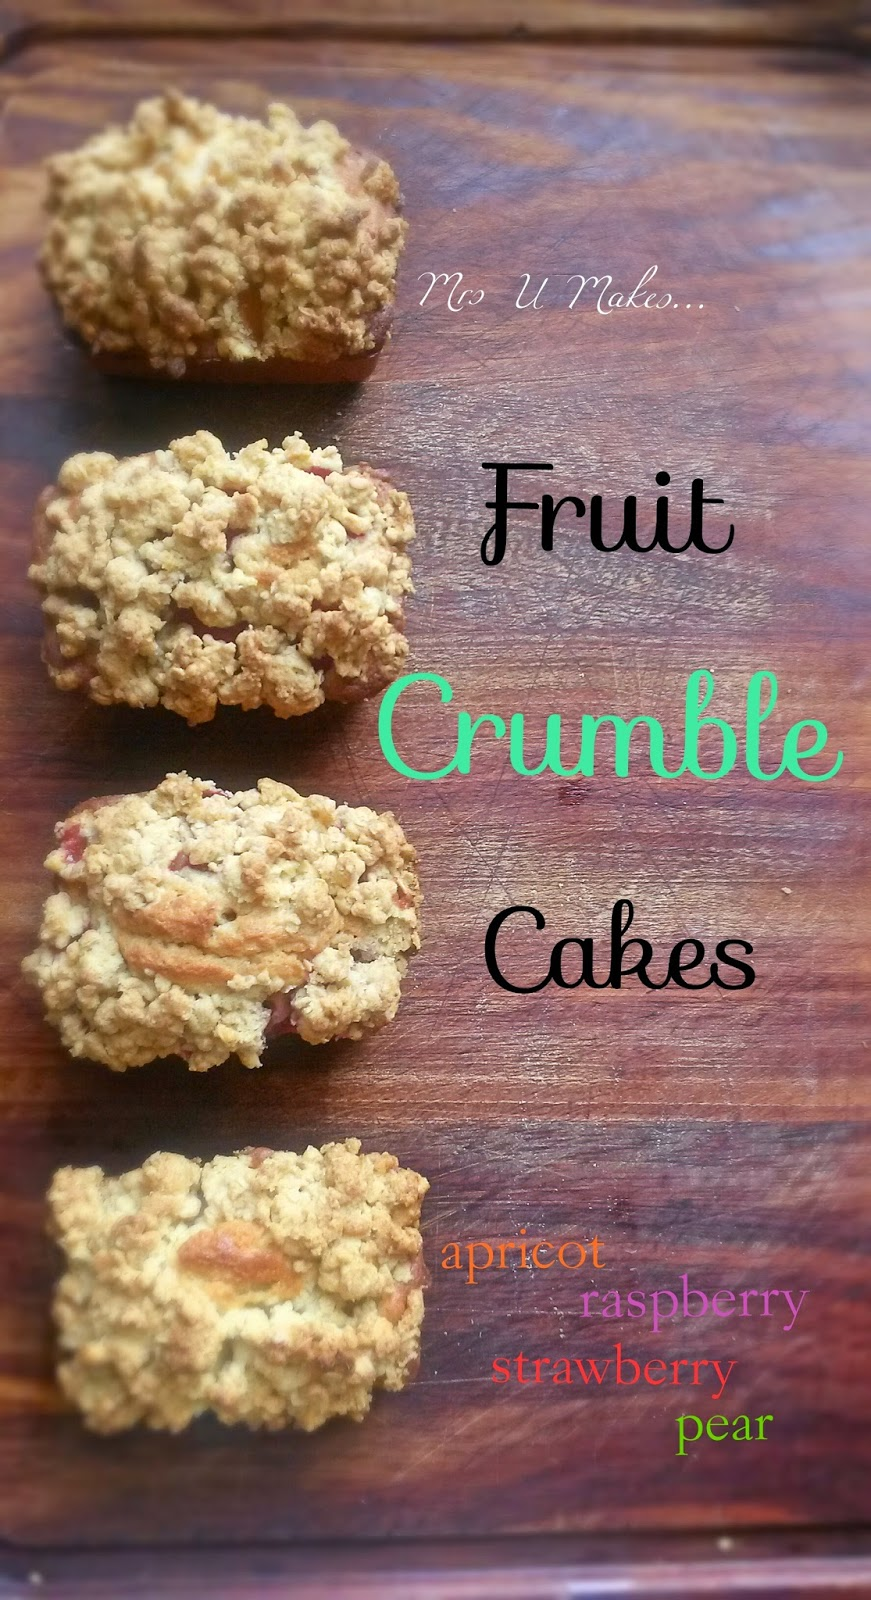 Fruit Crumble Cakes by Mrs U Makes